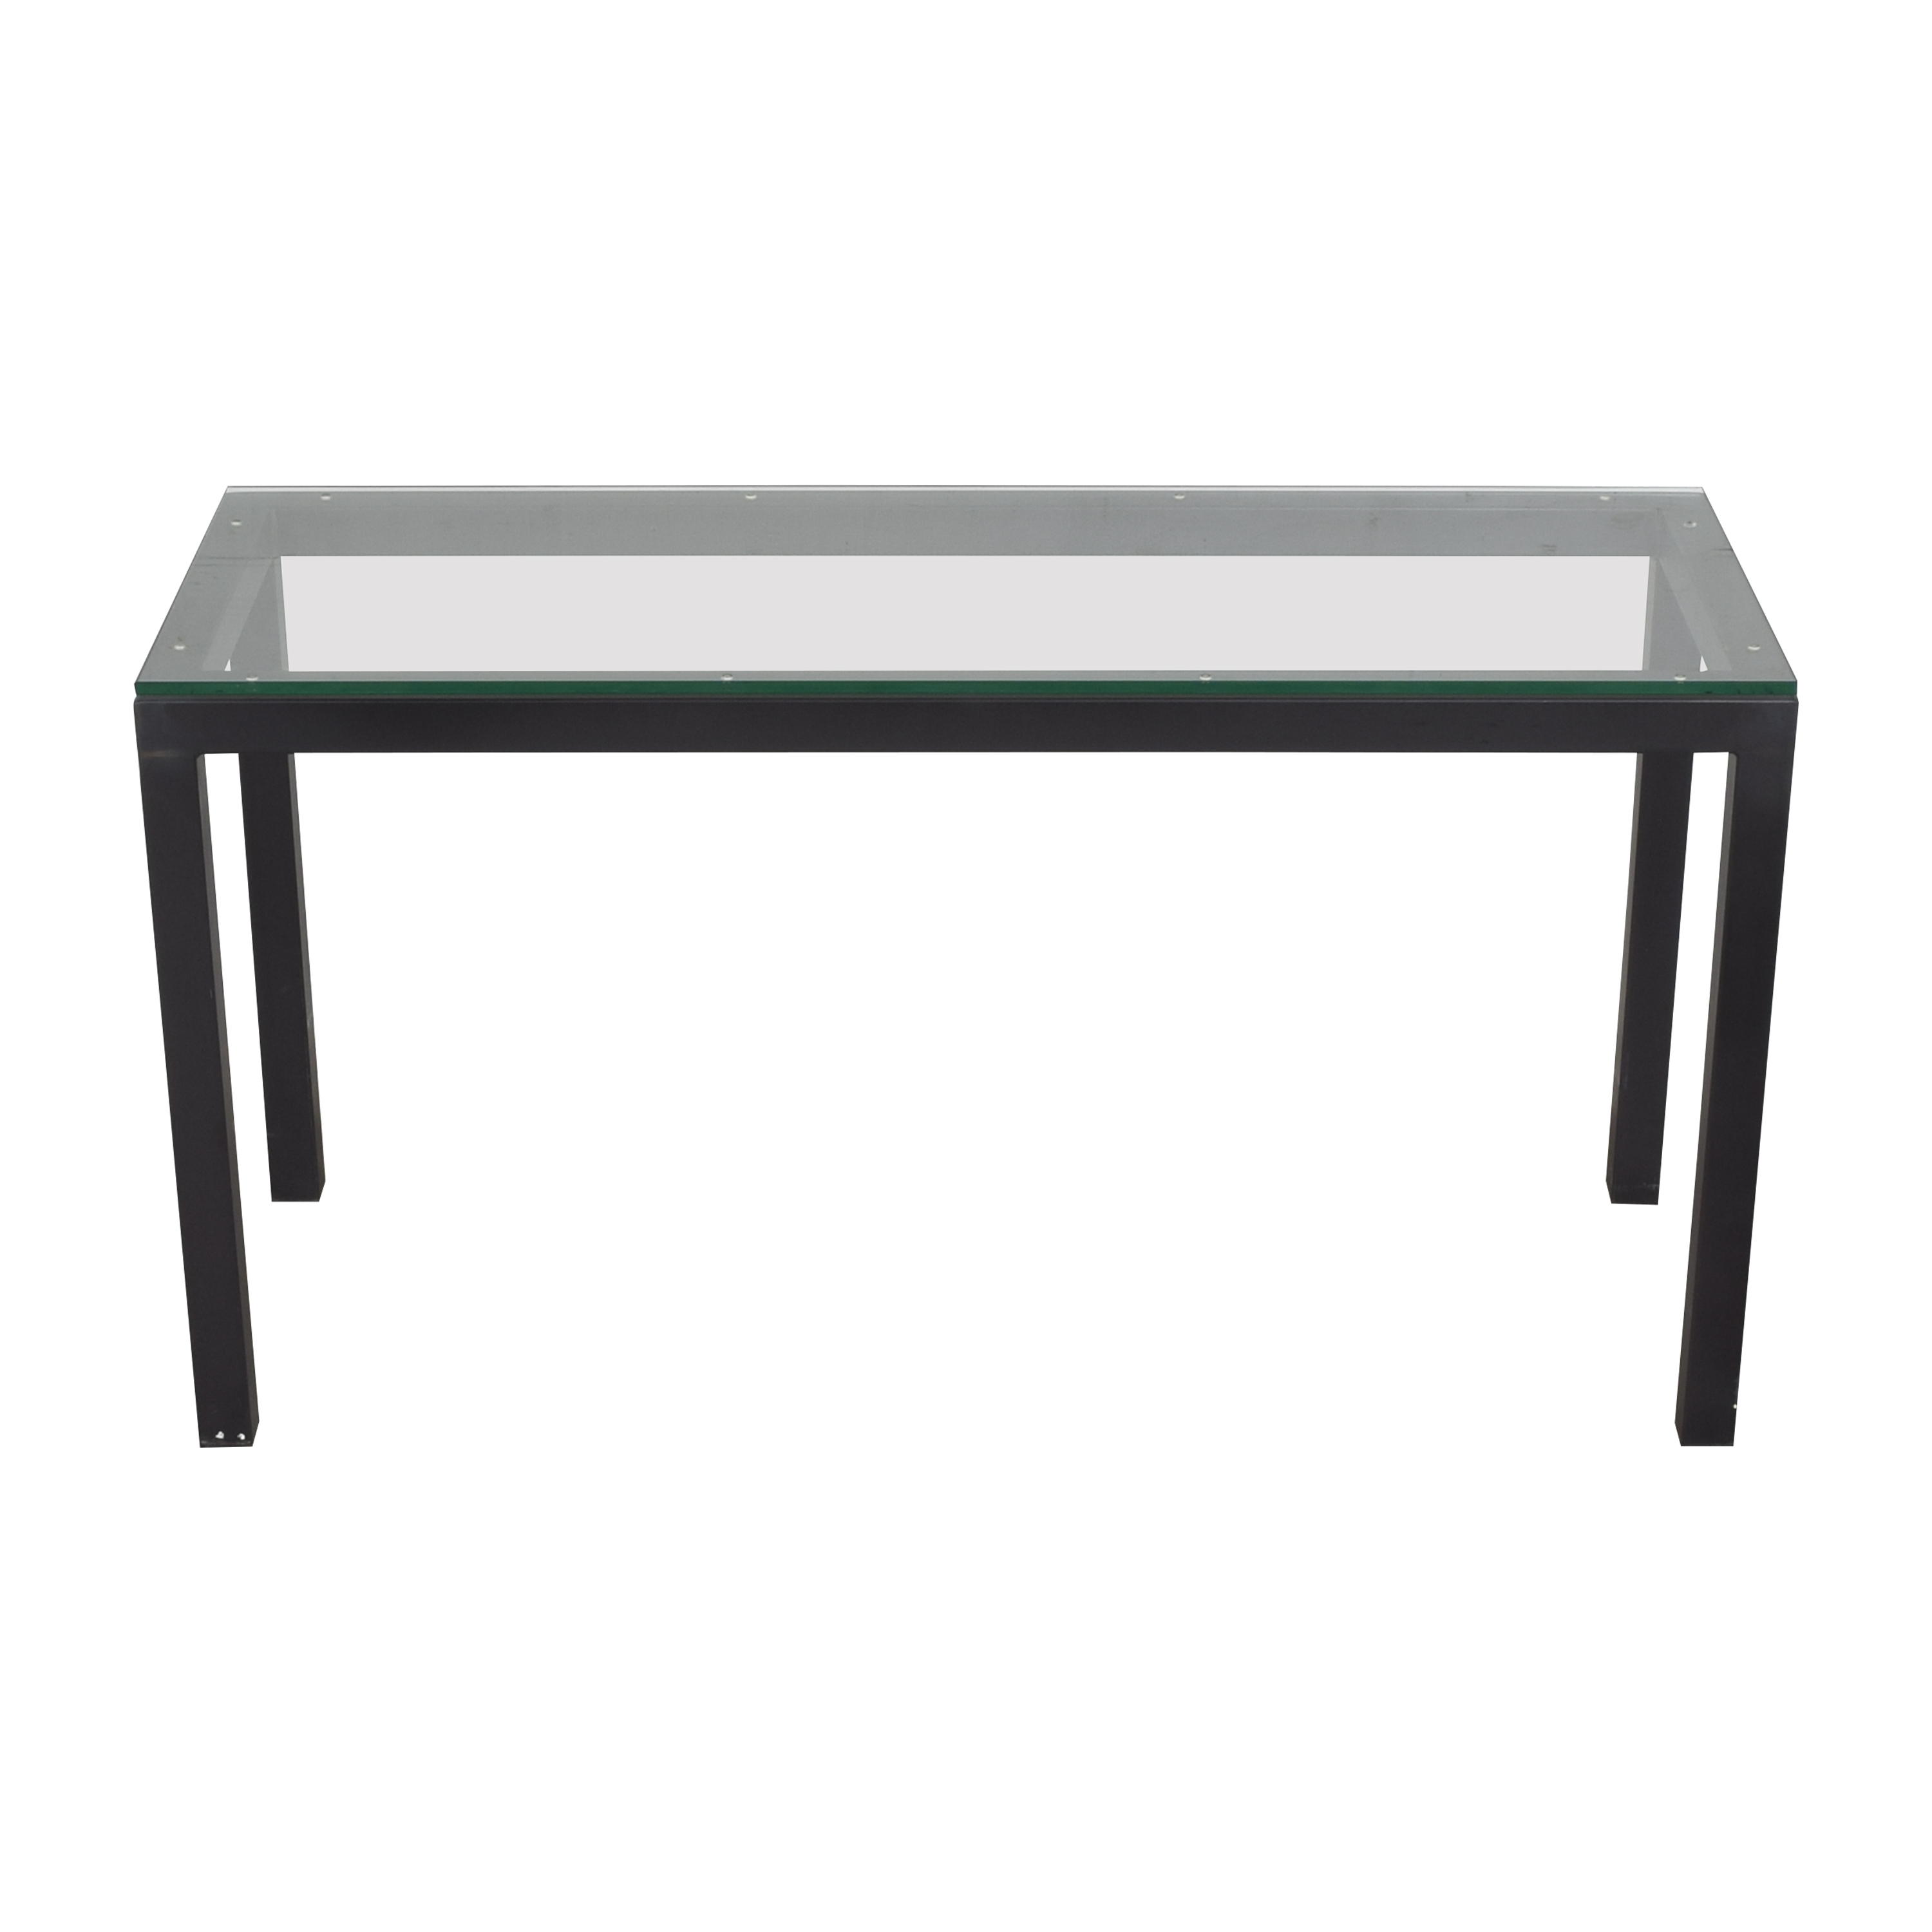 Room & Board Room & Board Parsons Table with Translucent Surface price